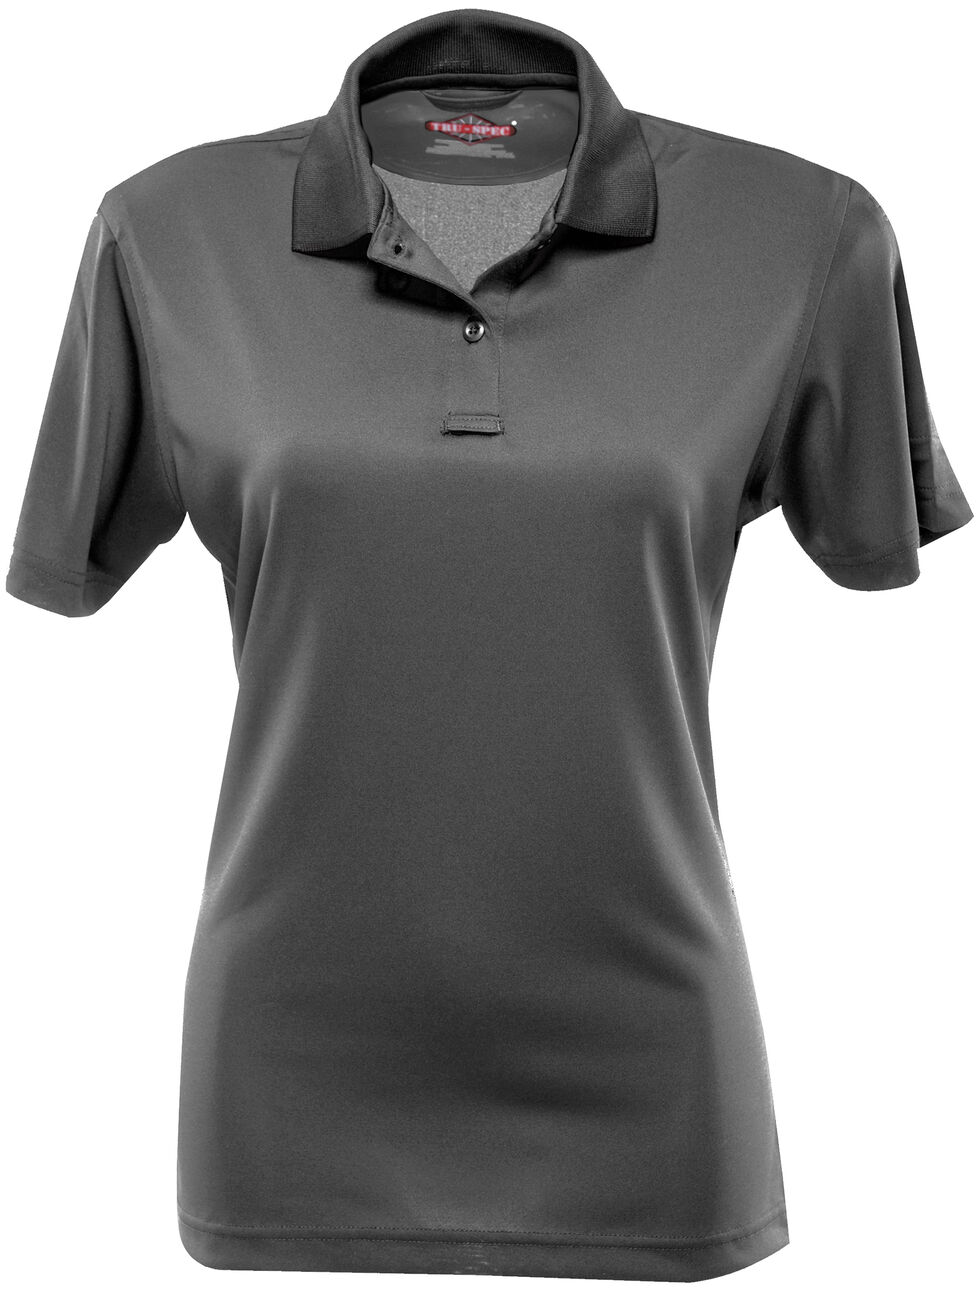 Tru-Spec Women's 24-7 Short Sleeve Performance Polo Shirt - Extra Large Sizes, Charcoal Grey, hi-res